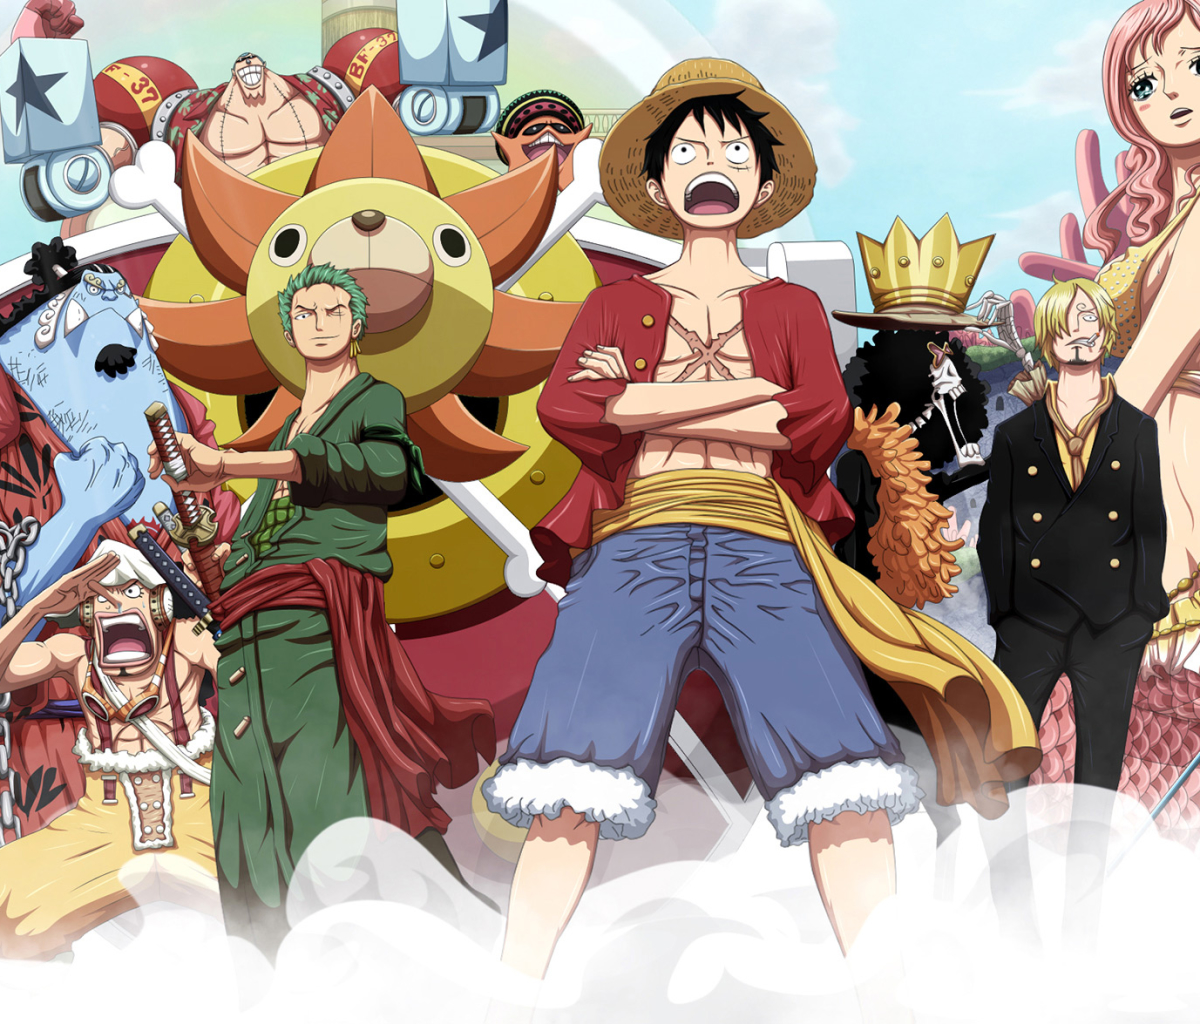 12 One Piece Lenovotab 2 A7 30 1200x1024 Wallpapers